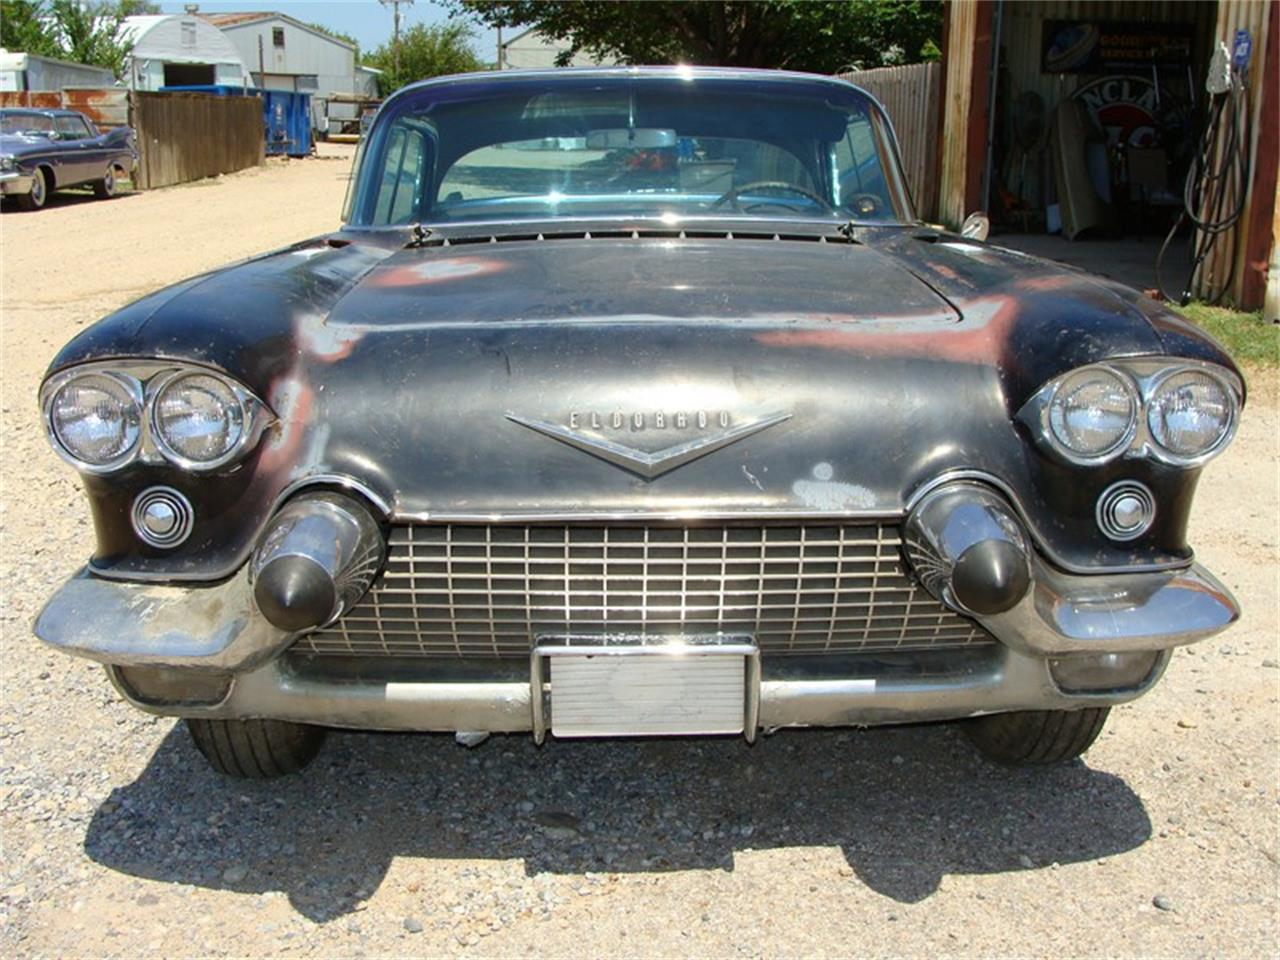 Large Picture of '58 Cadillac Eldorado Brougham located in Texas - $30,000.00 Offered by Pete's Classic Cars - QELZ